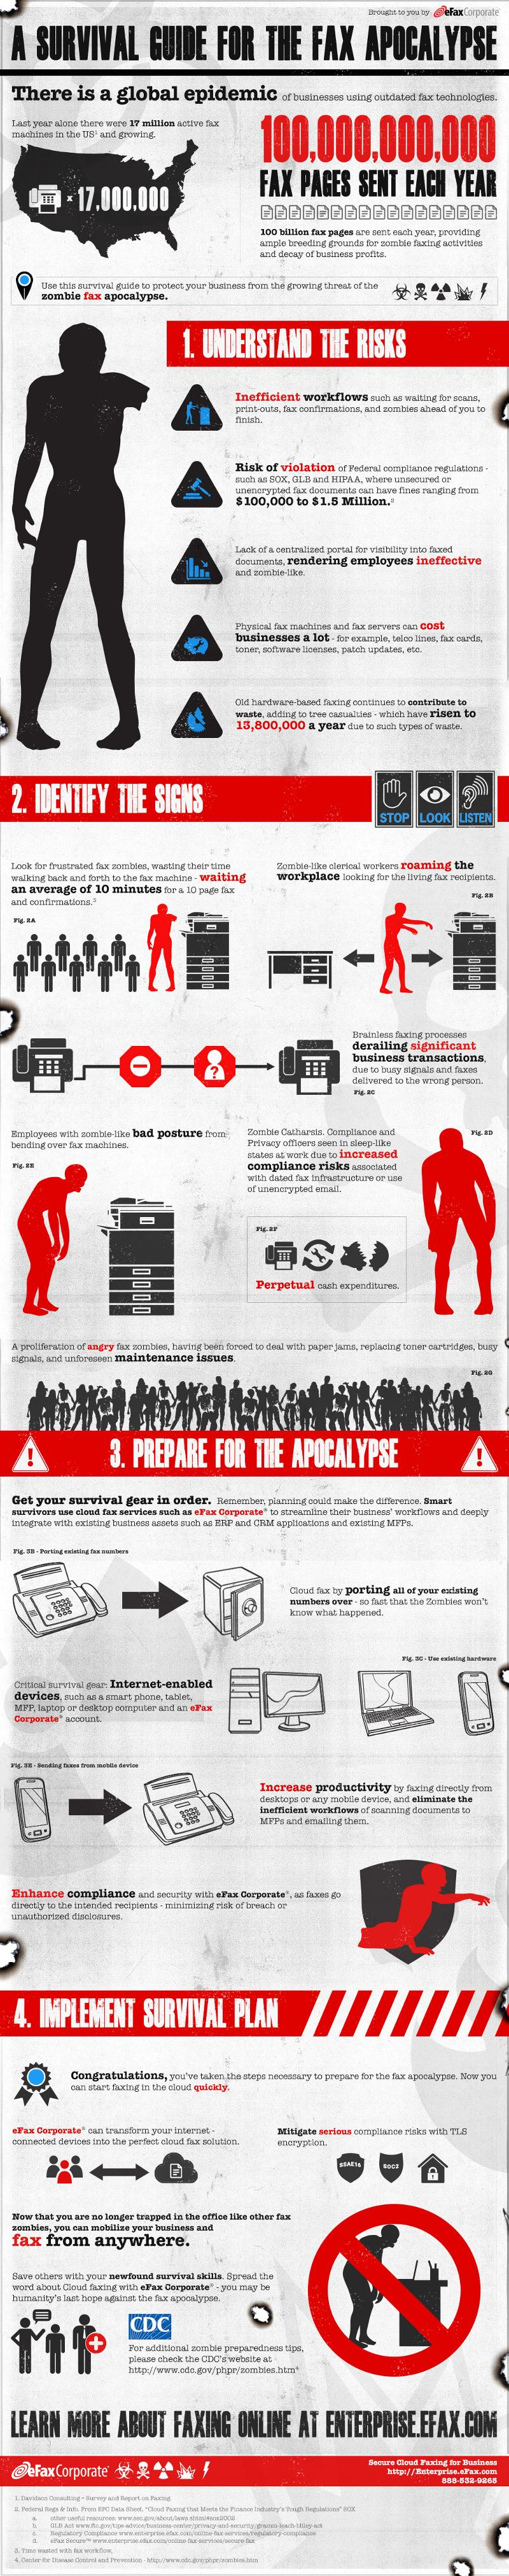 efax-corporate-zombie-fax-infographi.jpg